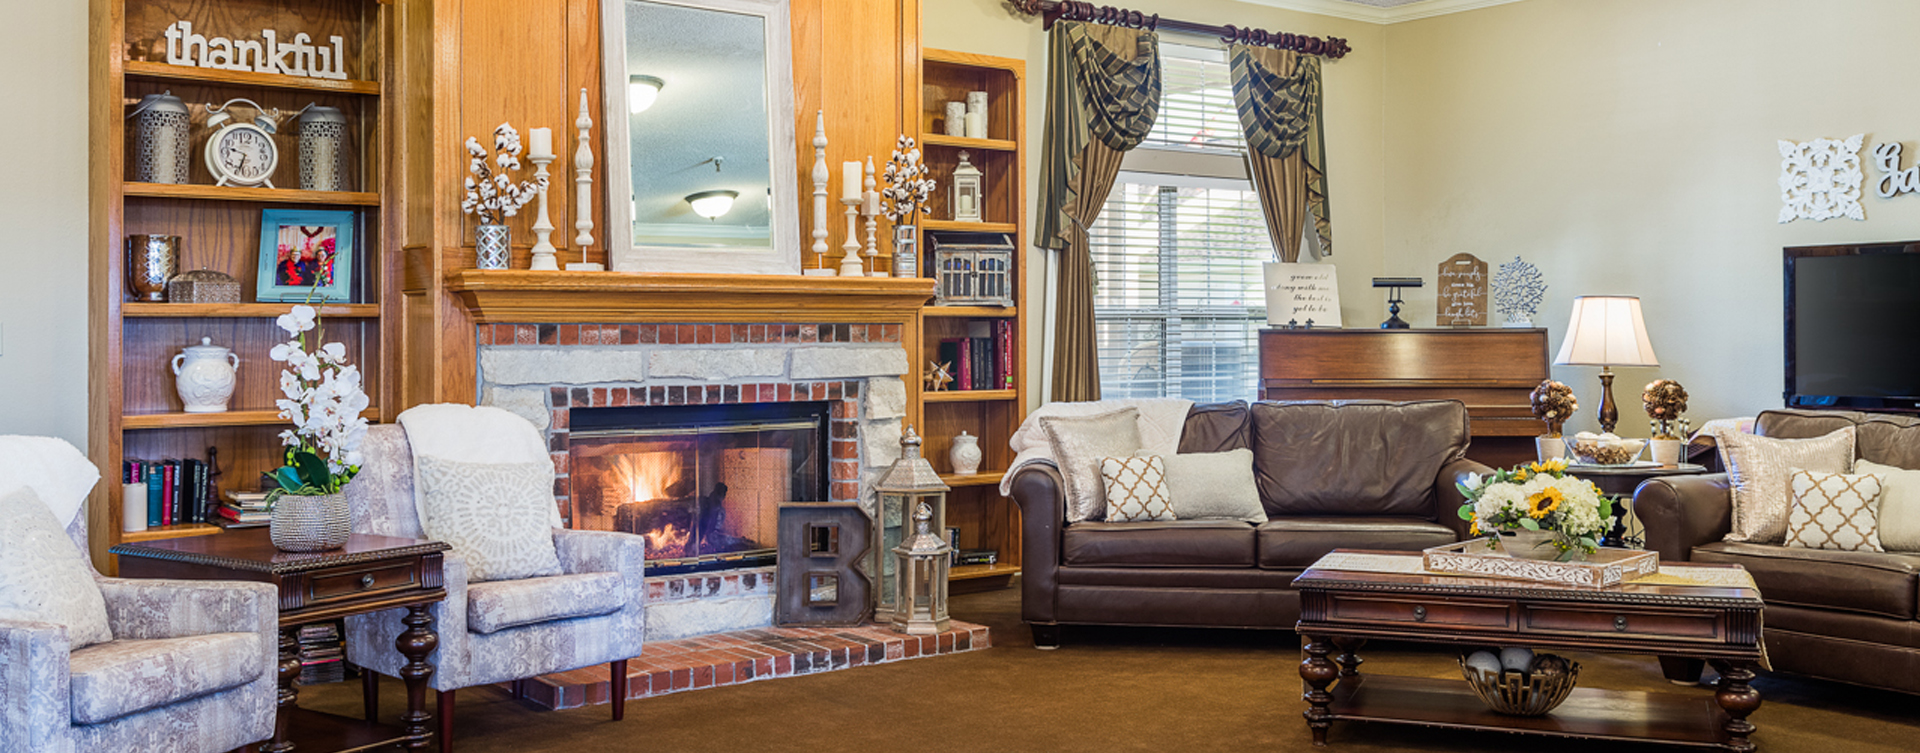 Enjoy a good book in the living room at Bickford of Ames